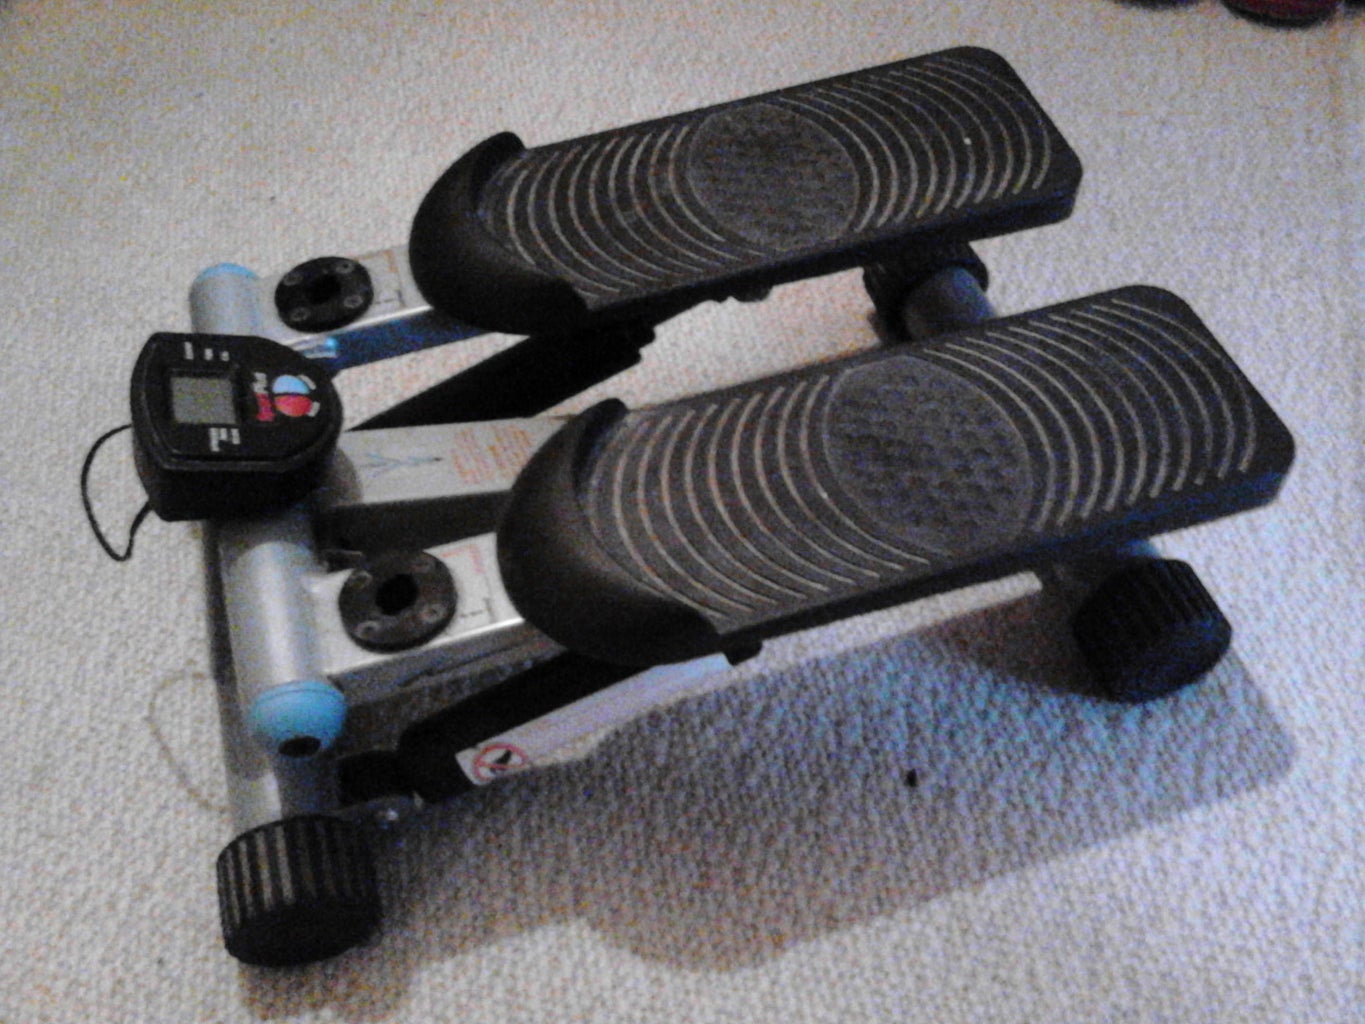 Indoors Workout Stepper With Raspberry Pi & Arduino Iot